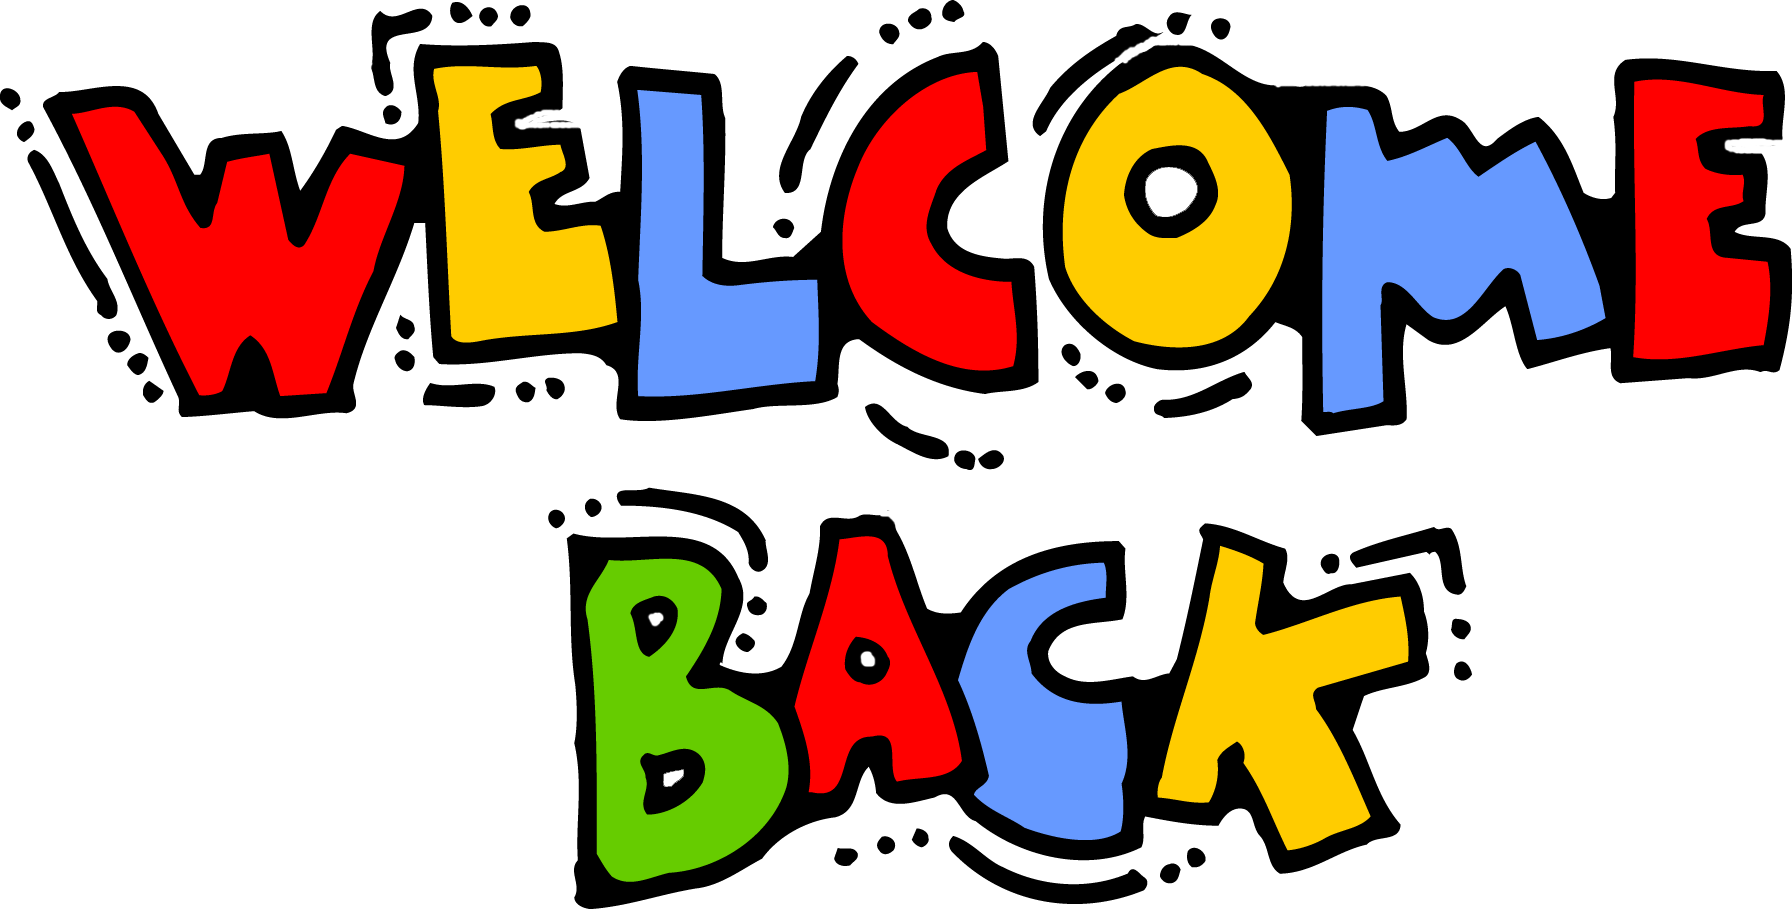 ... best back to school pictures and images 24 delightful welcome photos